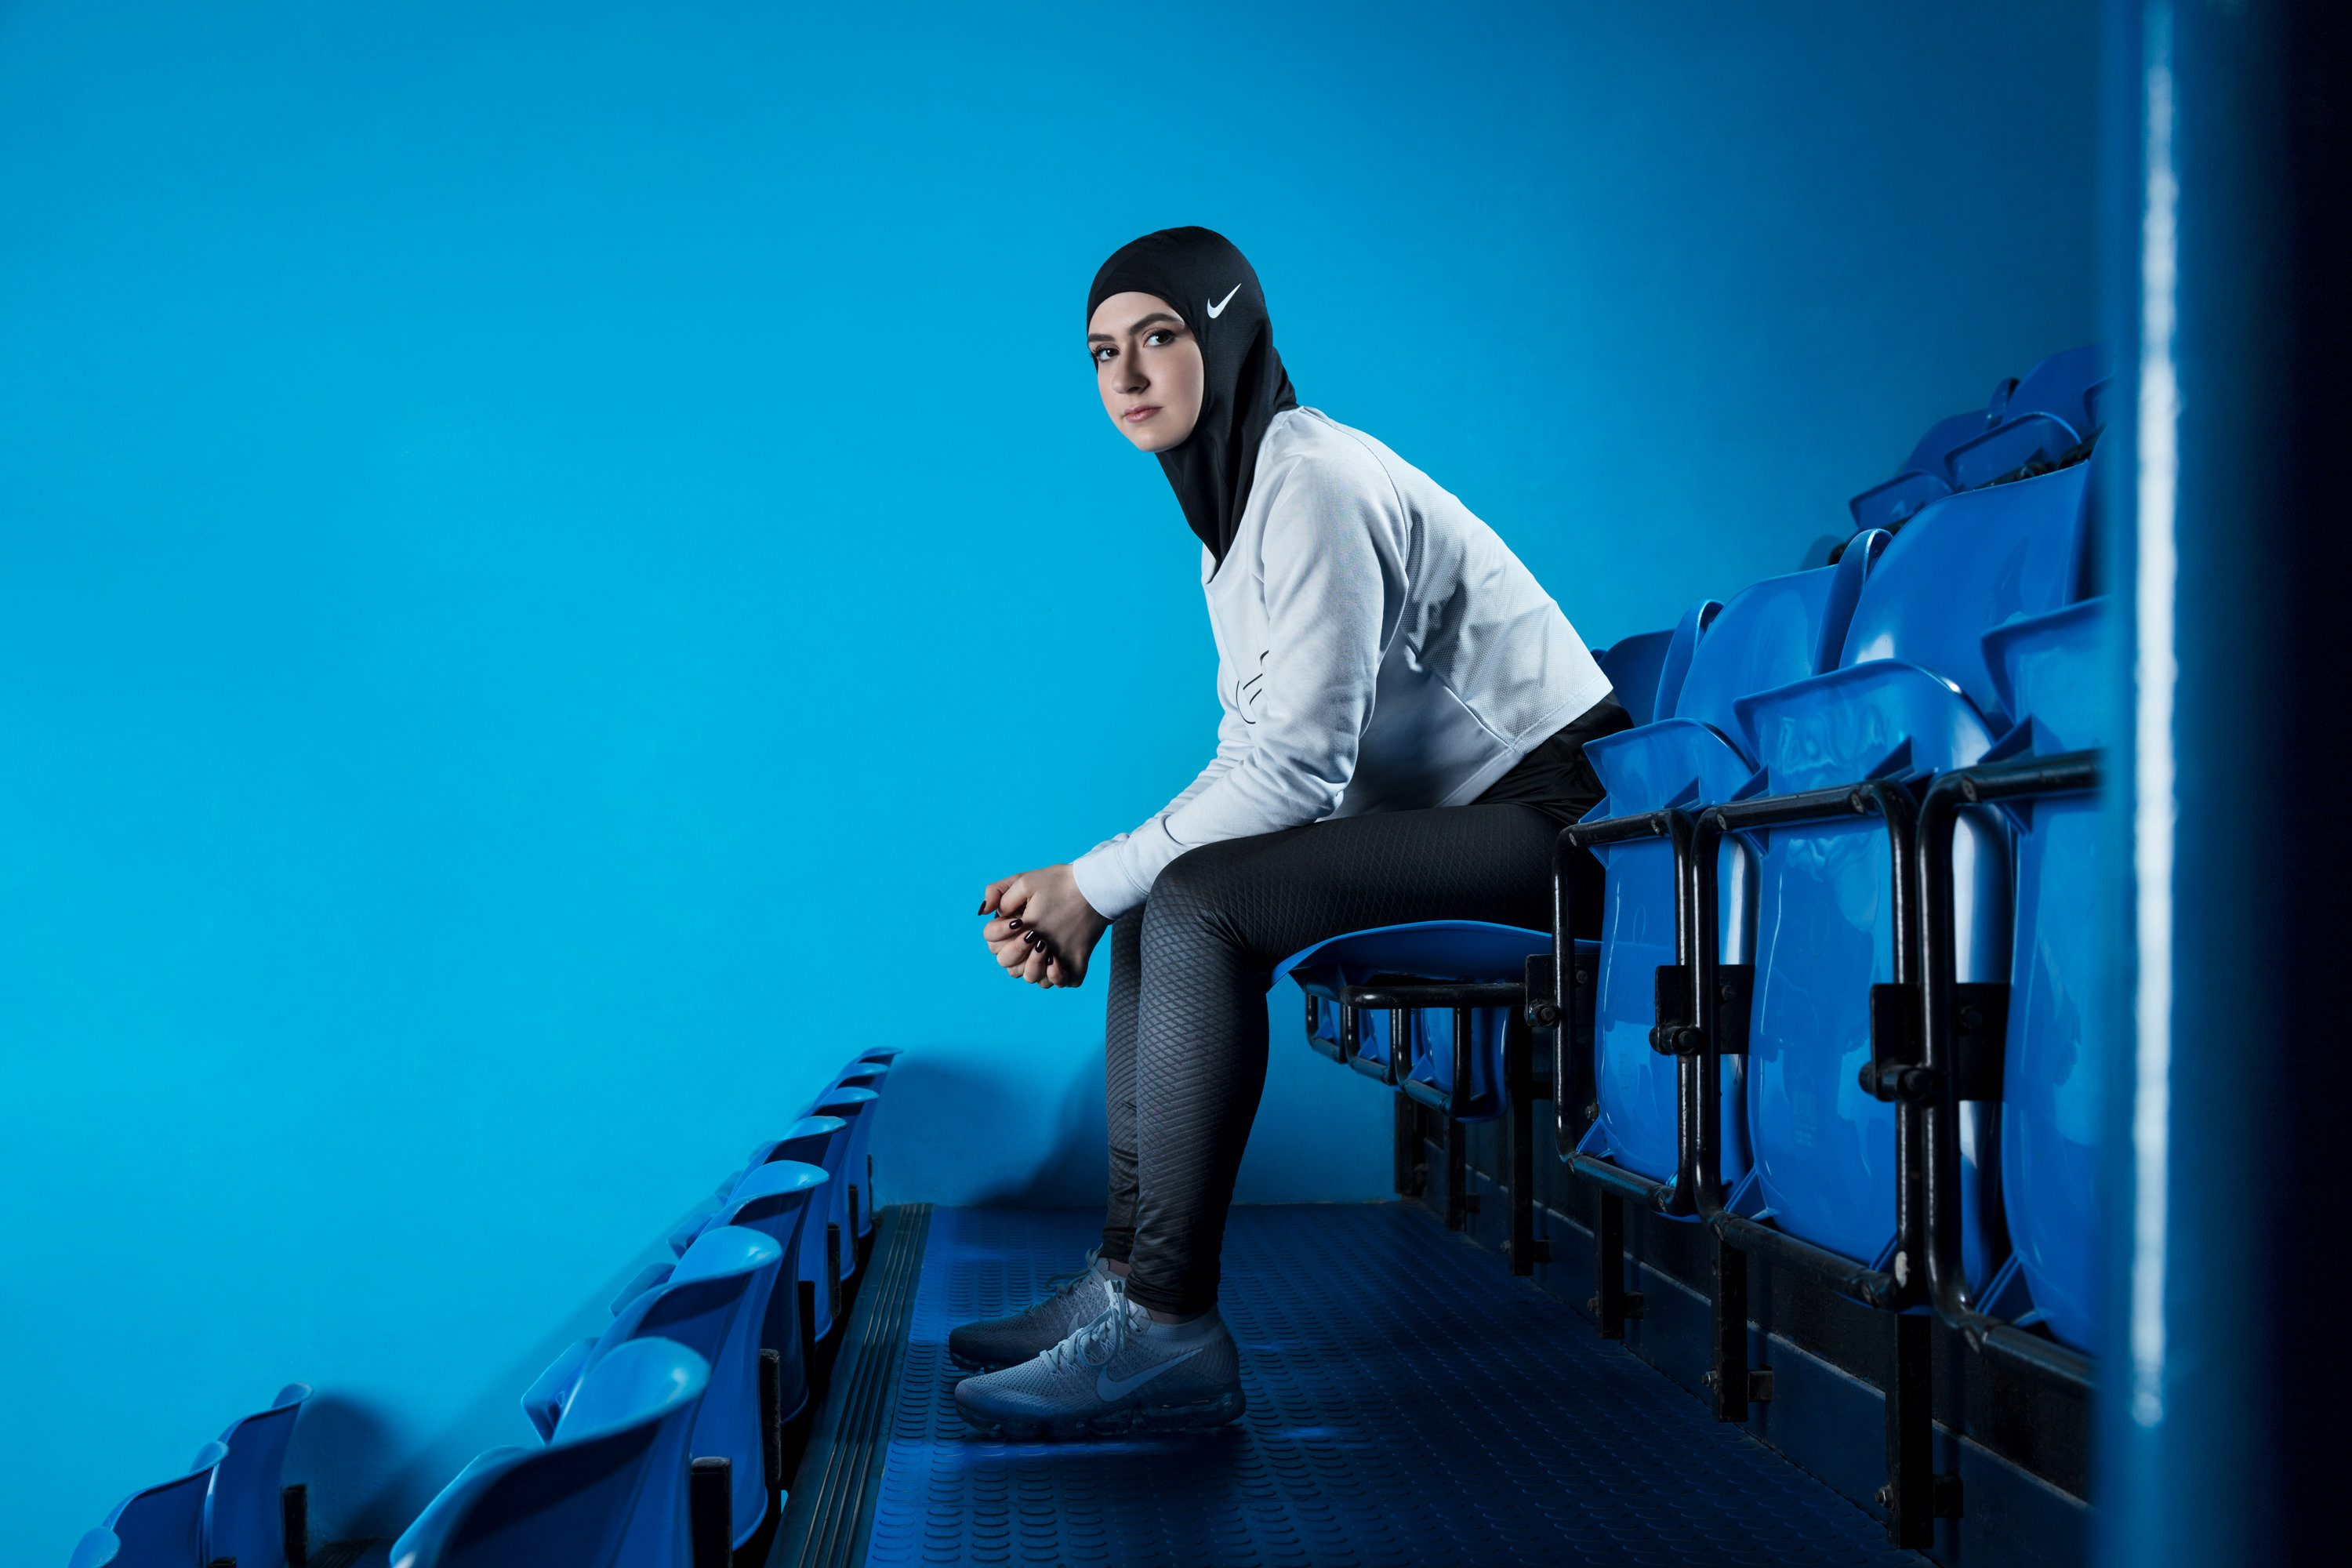 A woman poses in a Nike hijab being developed for Muslim women athletes, in an undate photo released by the company March 8, 2017.  Vivienne Balla/Nike/Handout via REUTERSTHIS IMAGE HAS BEEN SUPPLIED BY A THIRD PARTY. IT IS DISTRIBUTED, EXACTLY AS RECEIVED BY REUTERS, AS A SERVICE TO CLIENTSFOR EDITORIAL USE ONLY. NO RESALES. NO ARCHIVES